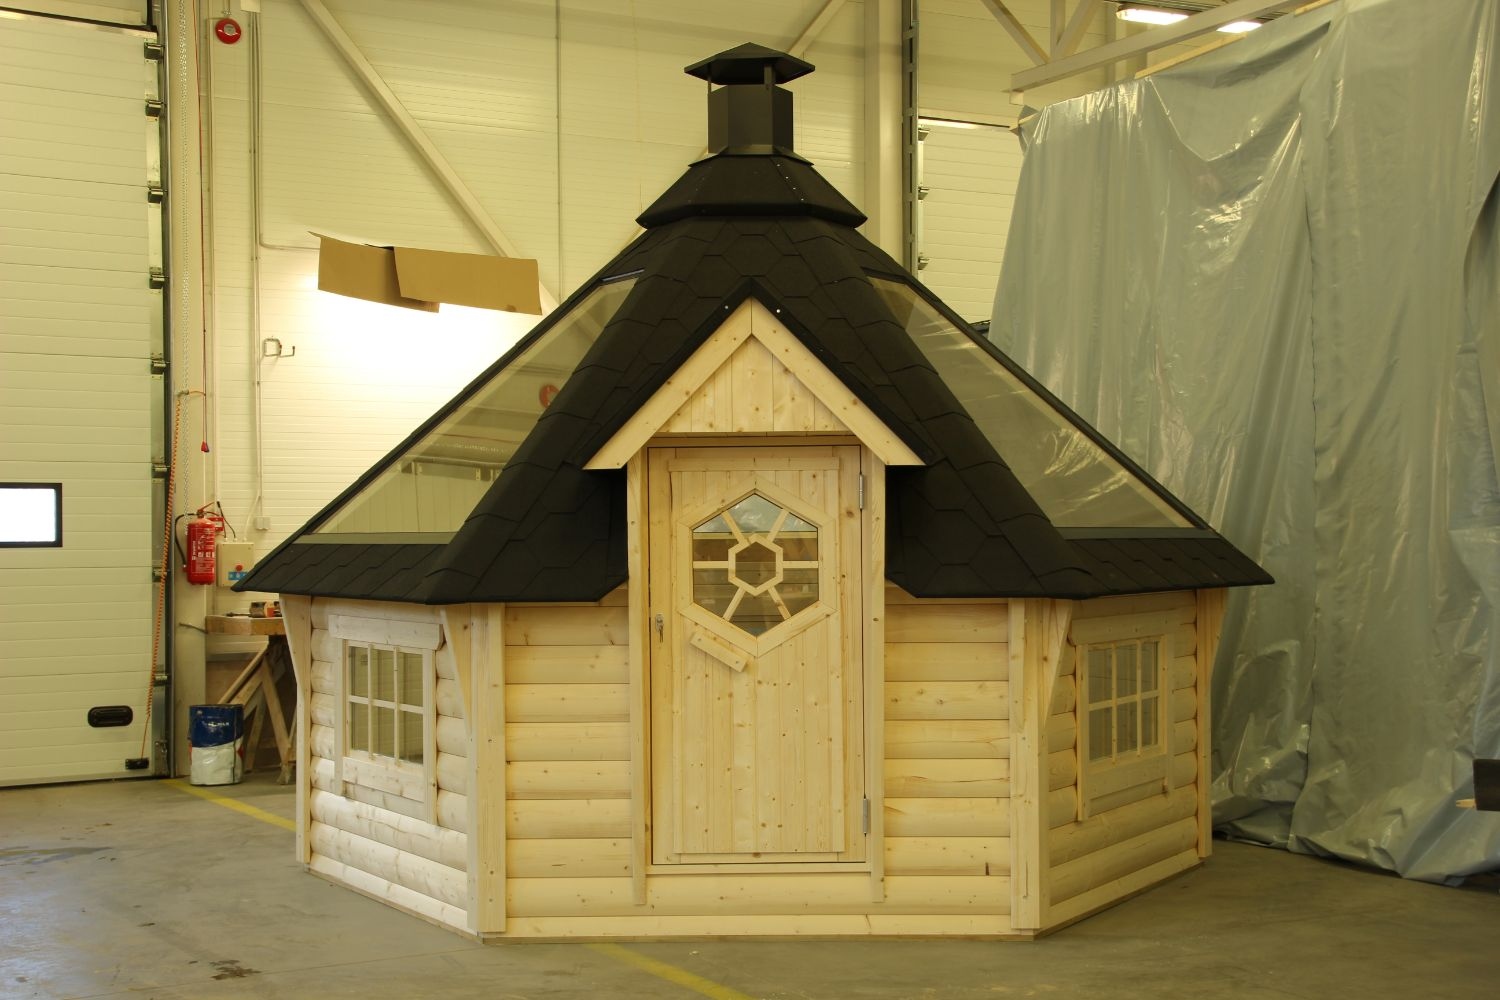 Brand New Luxury Log Cabins, BBQ Grill Cabins, Home Saunas, Hot Tubs,